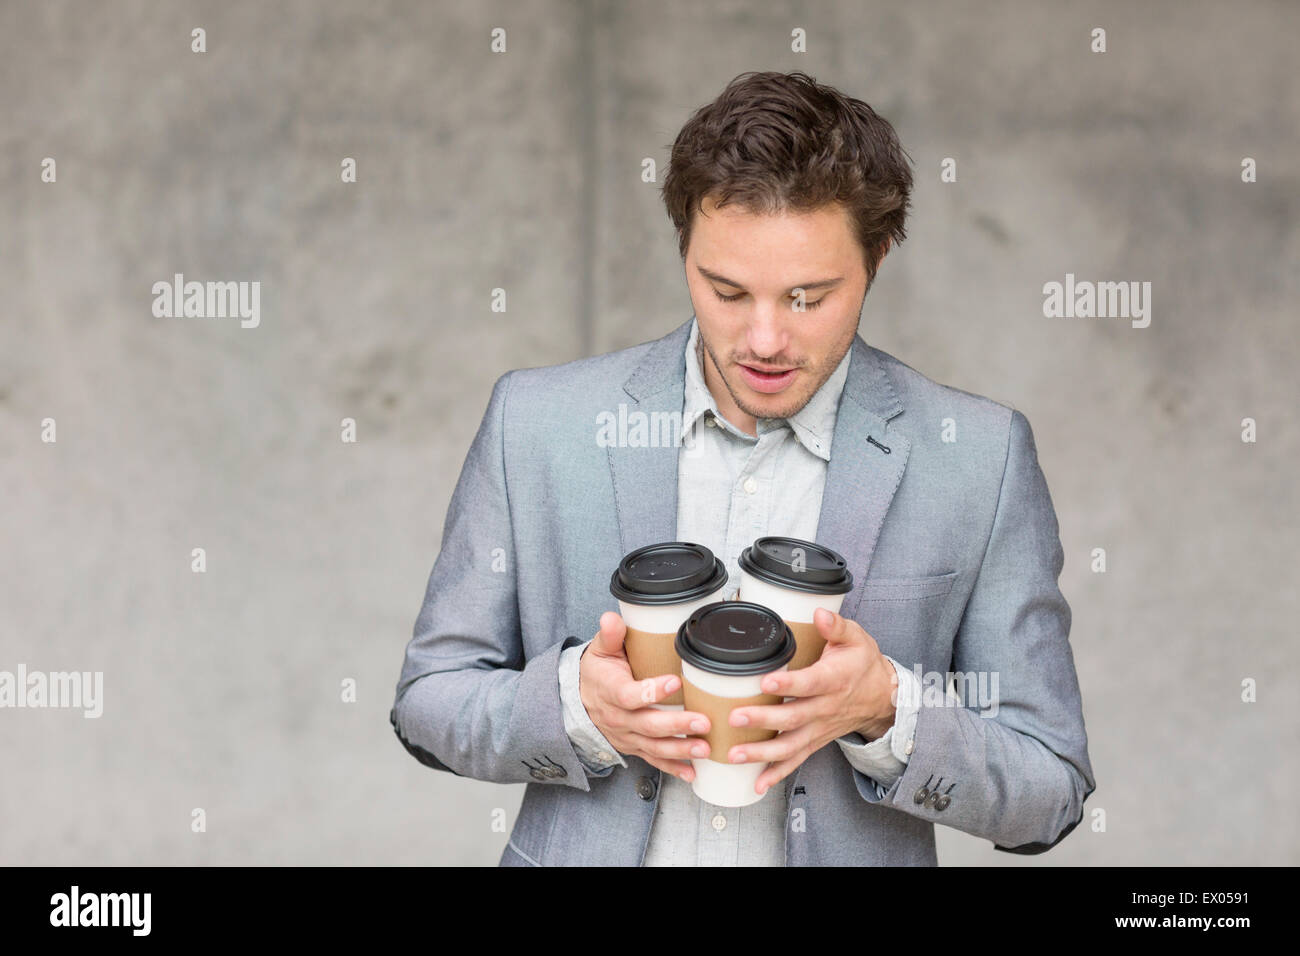 Businessman holding disposable coffee cups - Stock Image